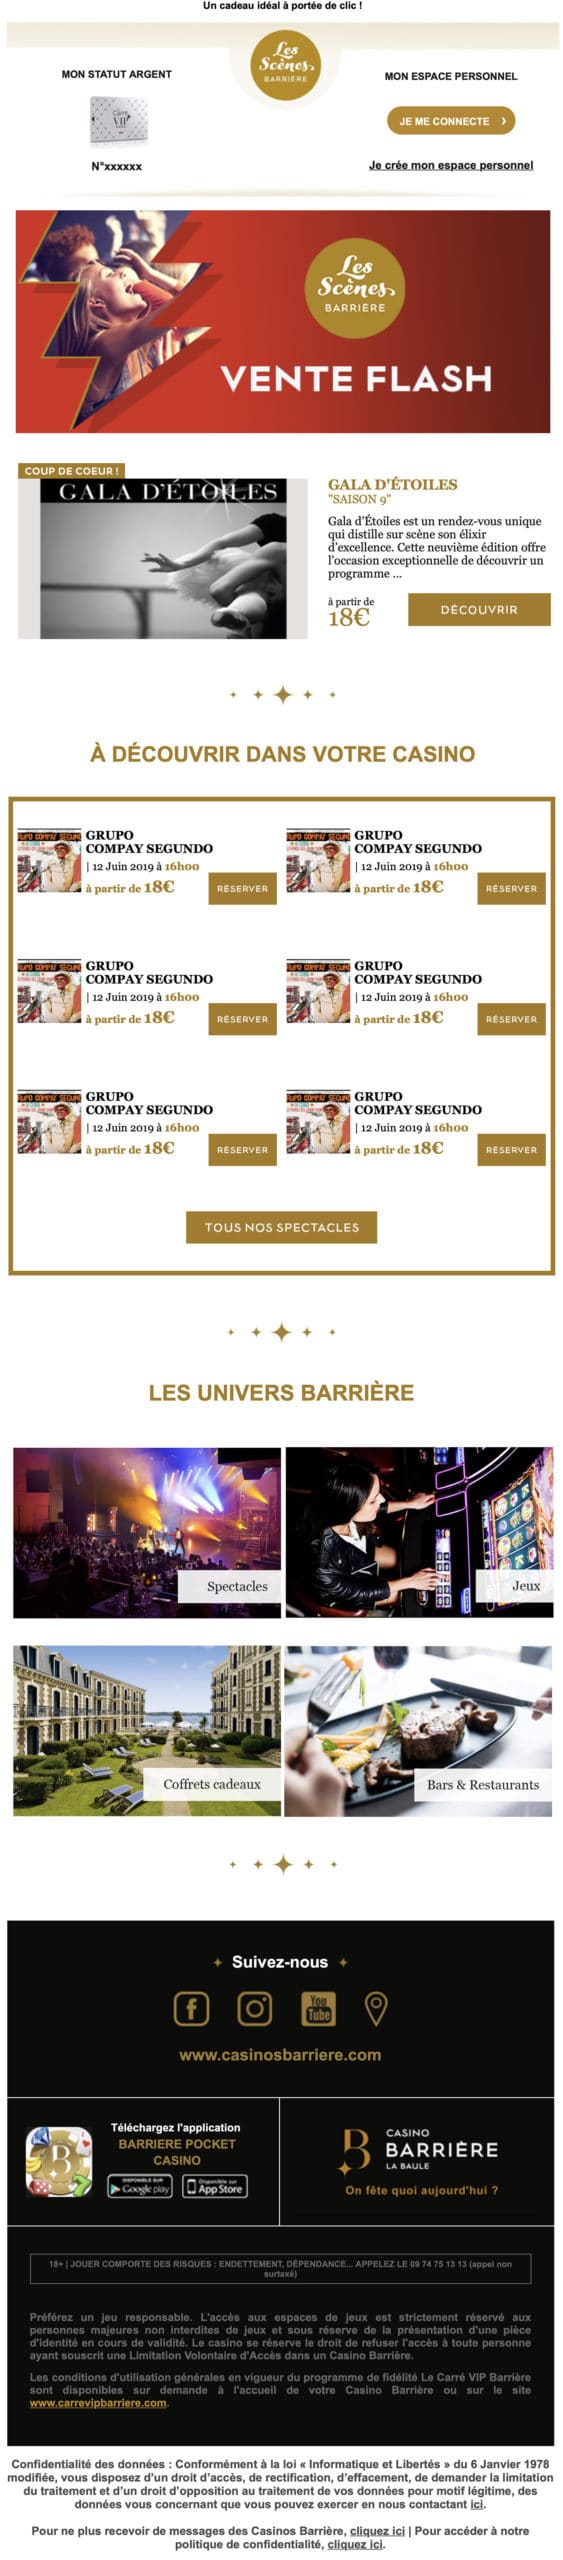 Casinobarriere_newsletter_00